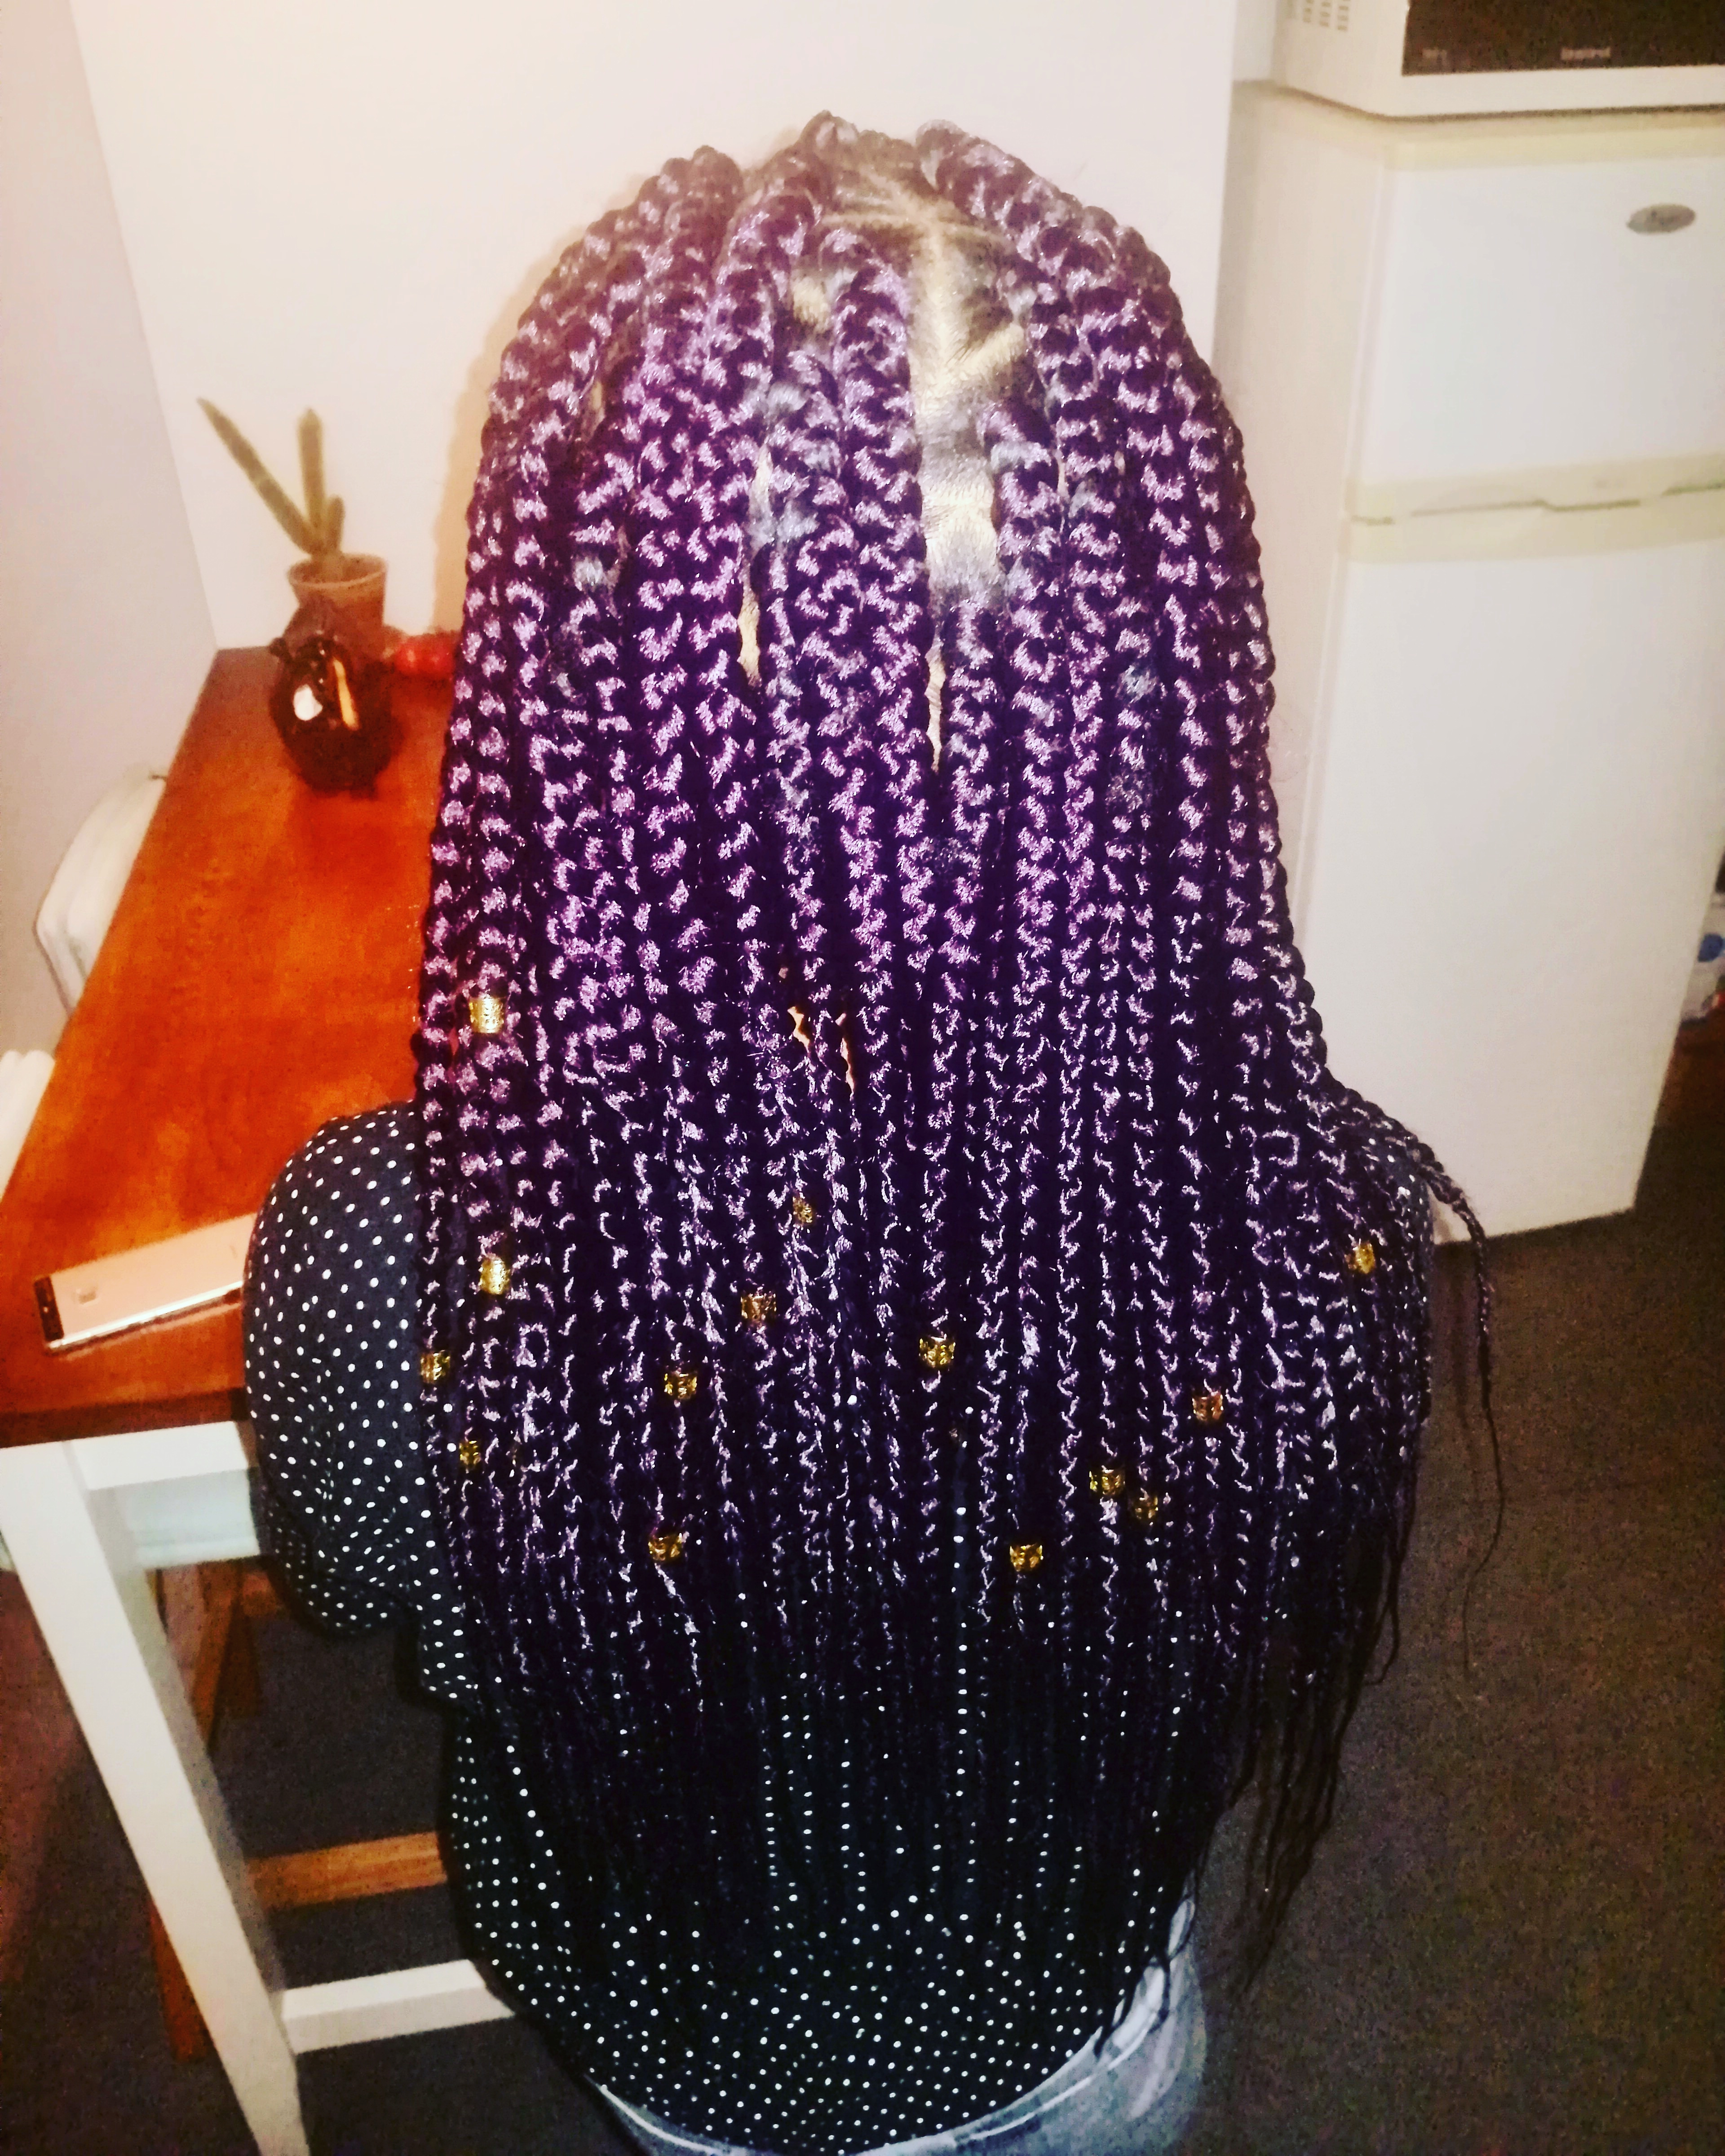 salon de coiffure afro tresse tresses box braids crochet braids vanilles tissages paris 75 77 78 91 92 93 94 95 MHBPMPMD